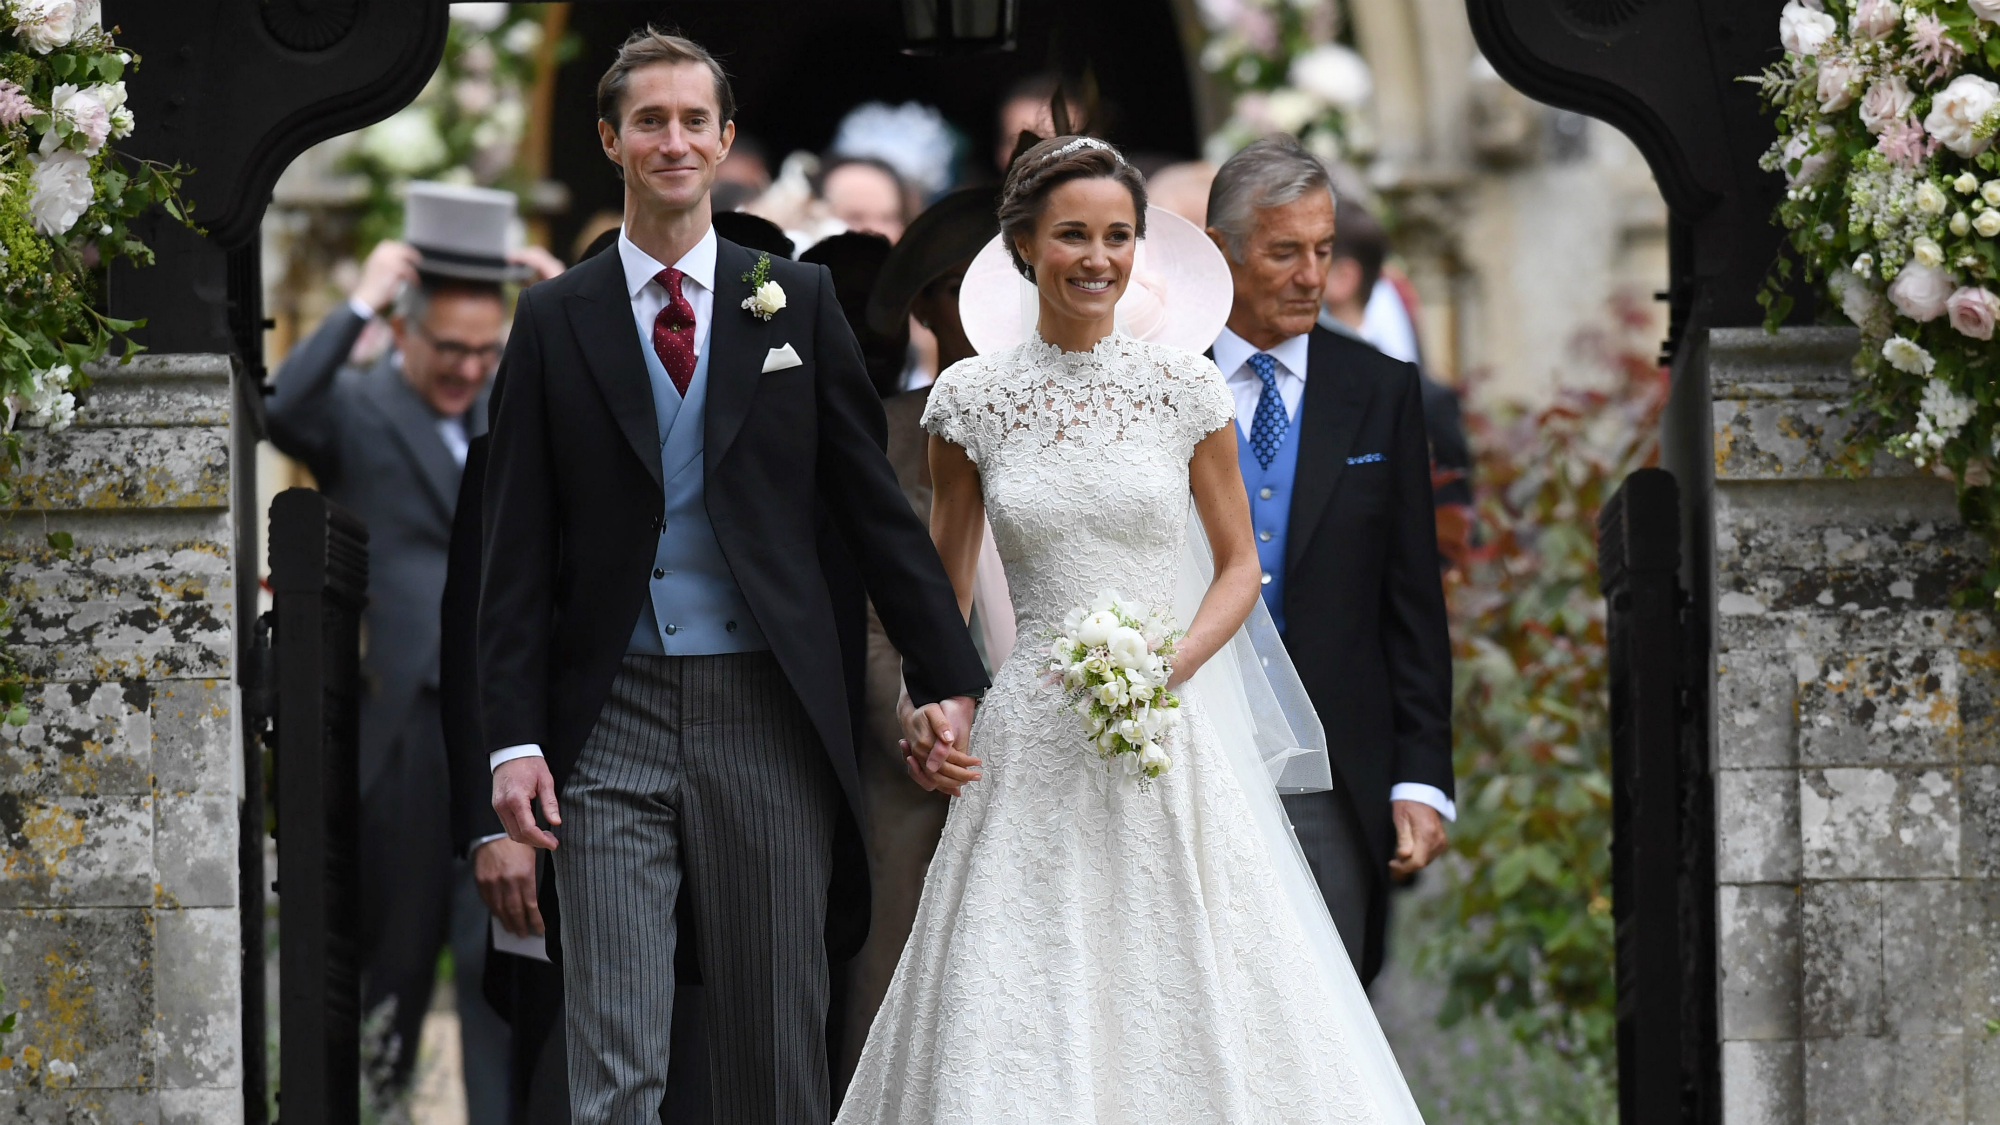 Pippa Middleton's wedding menu has been revealed and it's dreamy